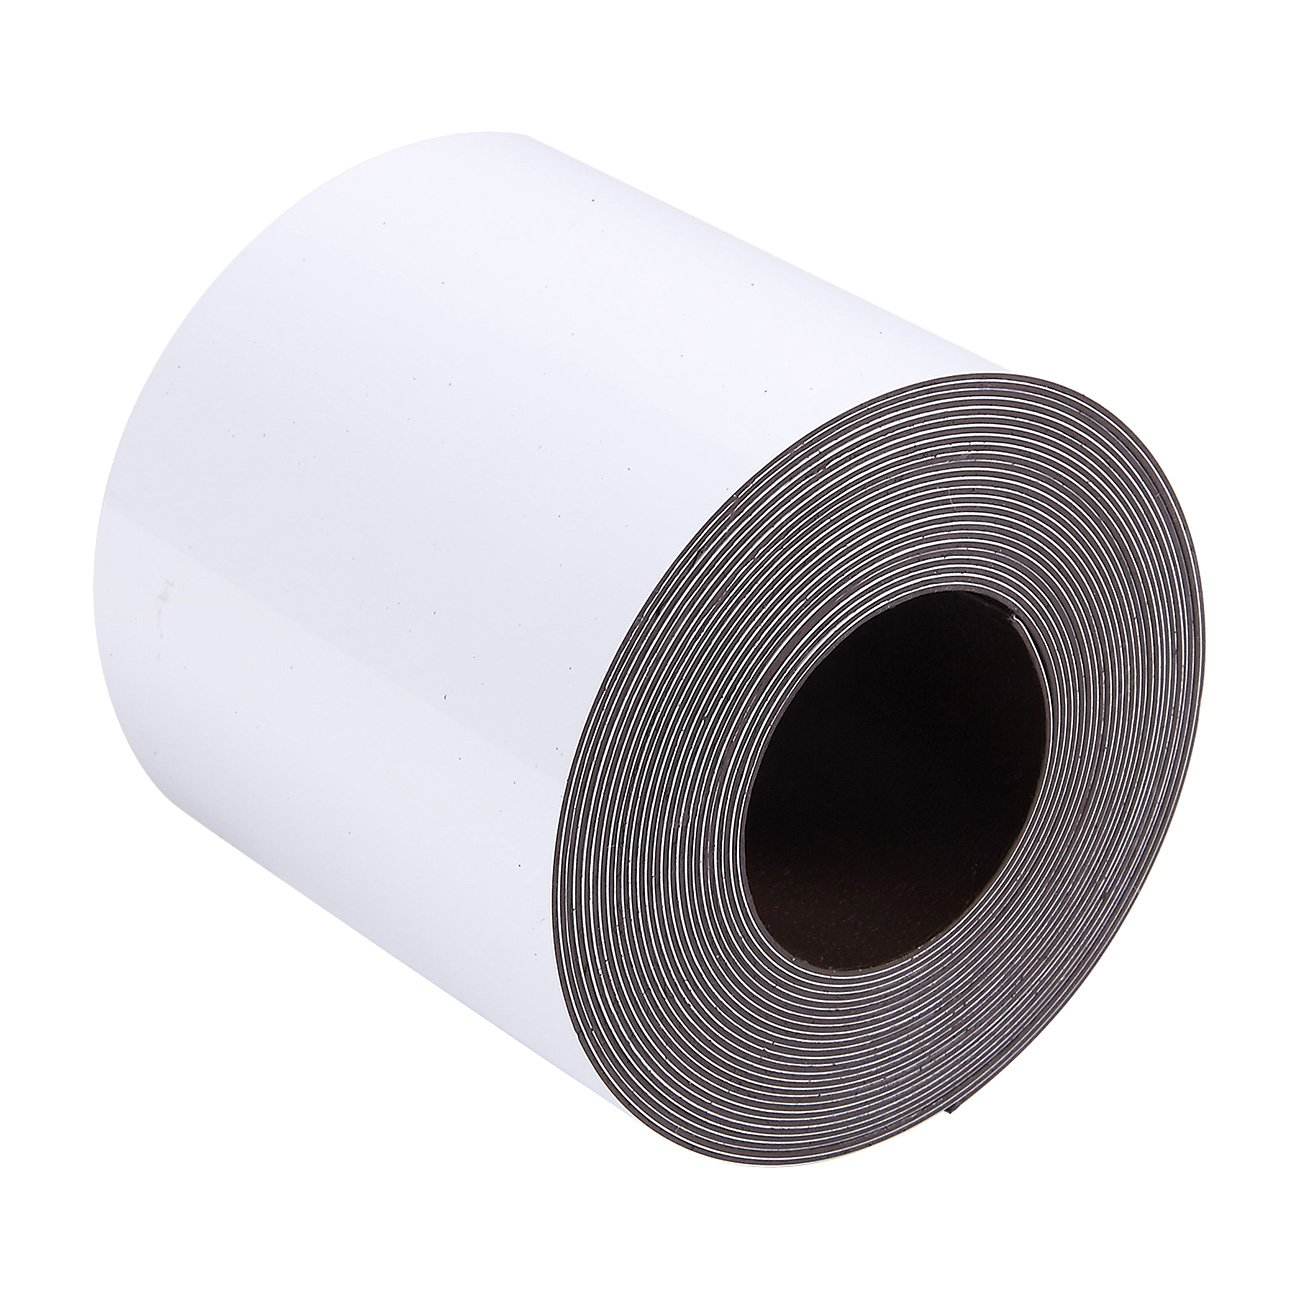 Magnetic Tape Roll White 2 Inches x 10 Feet Rewritable Magnetic Dry Erase Whiteboard Roll